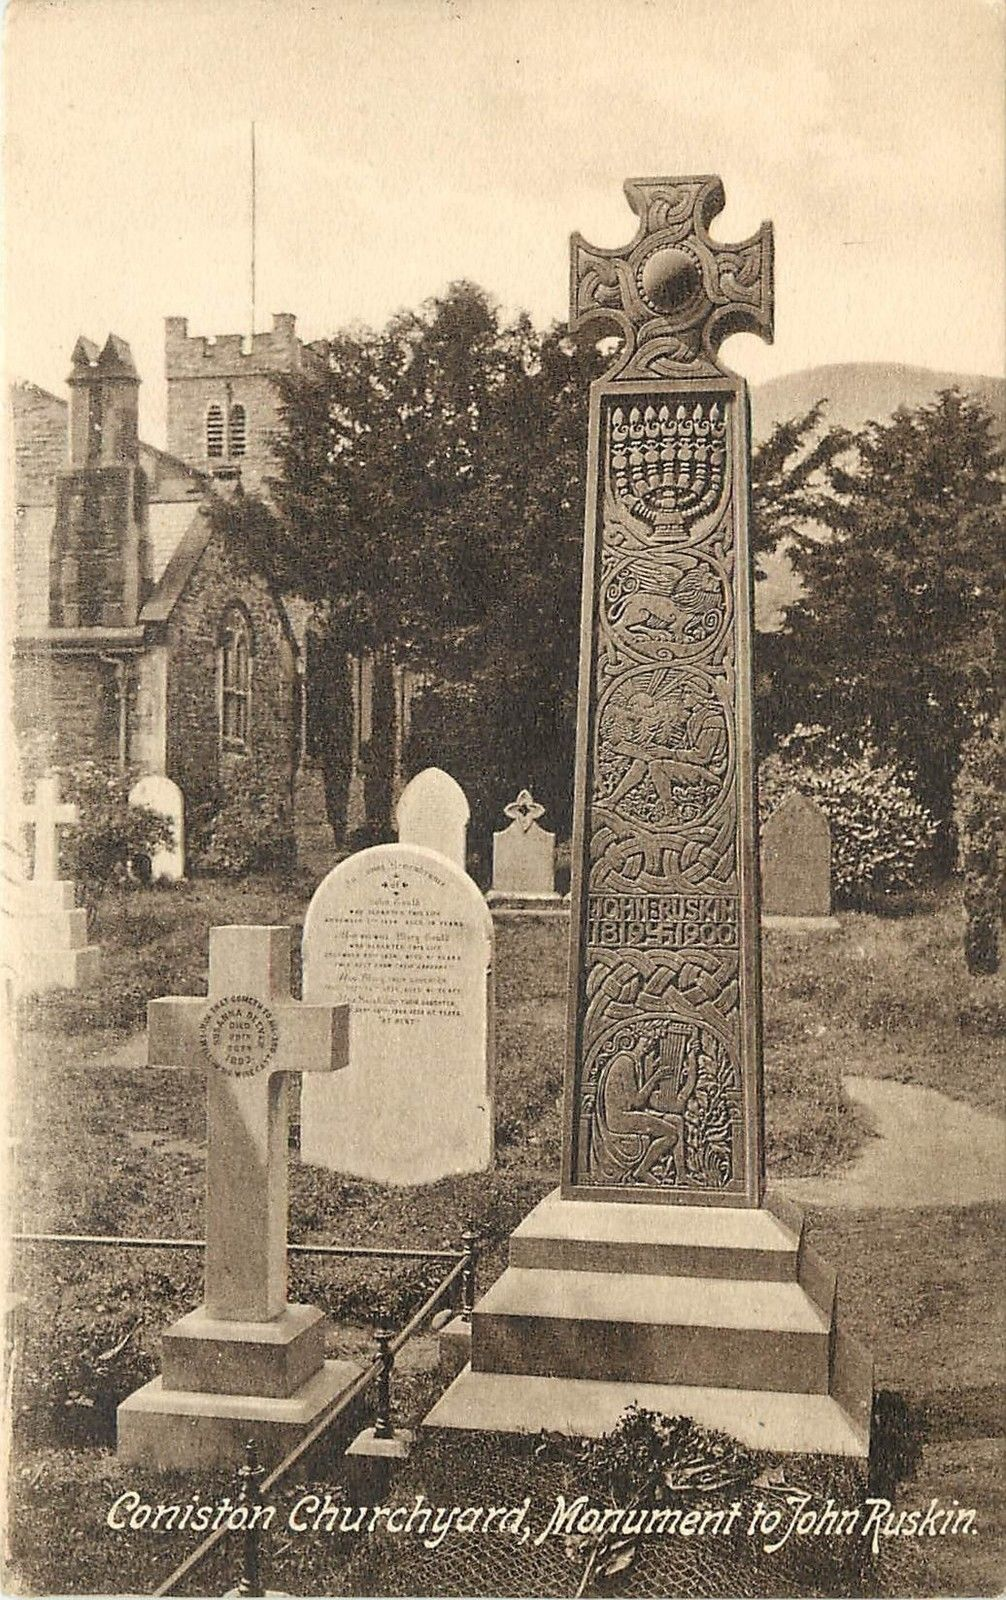 Vintage postage card showing the grave of John Ruskin.